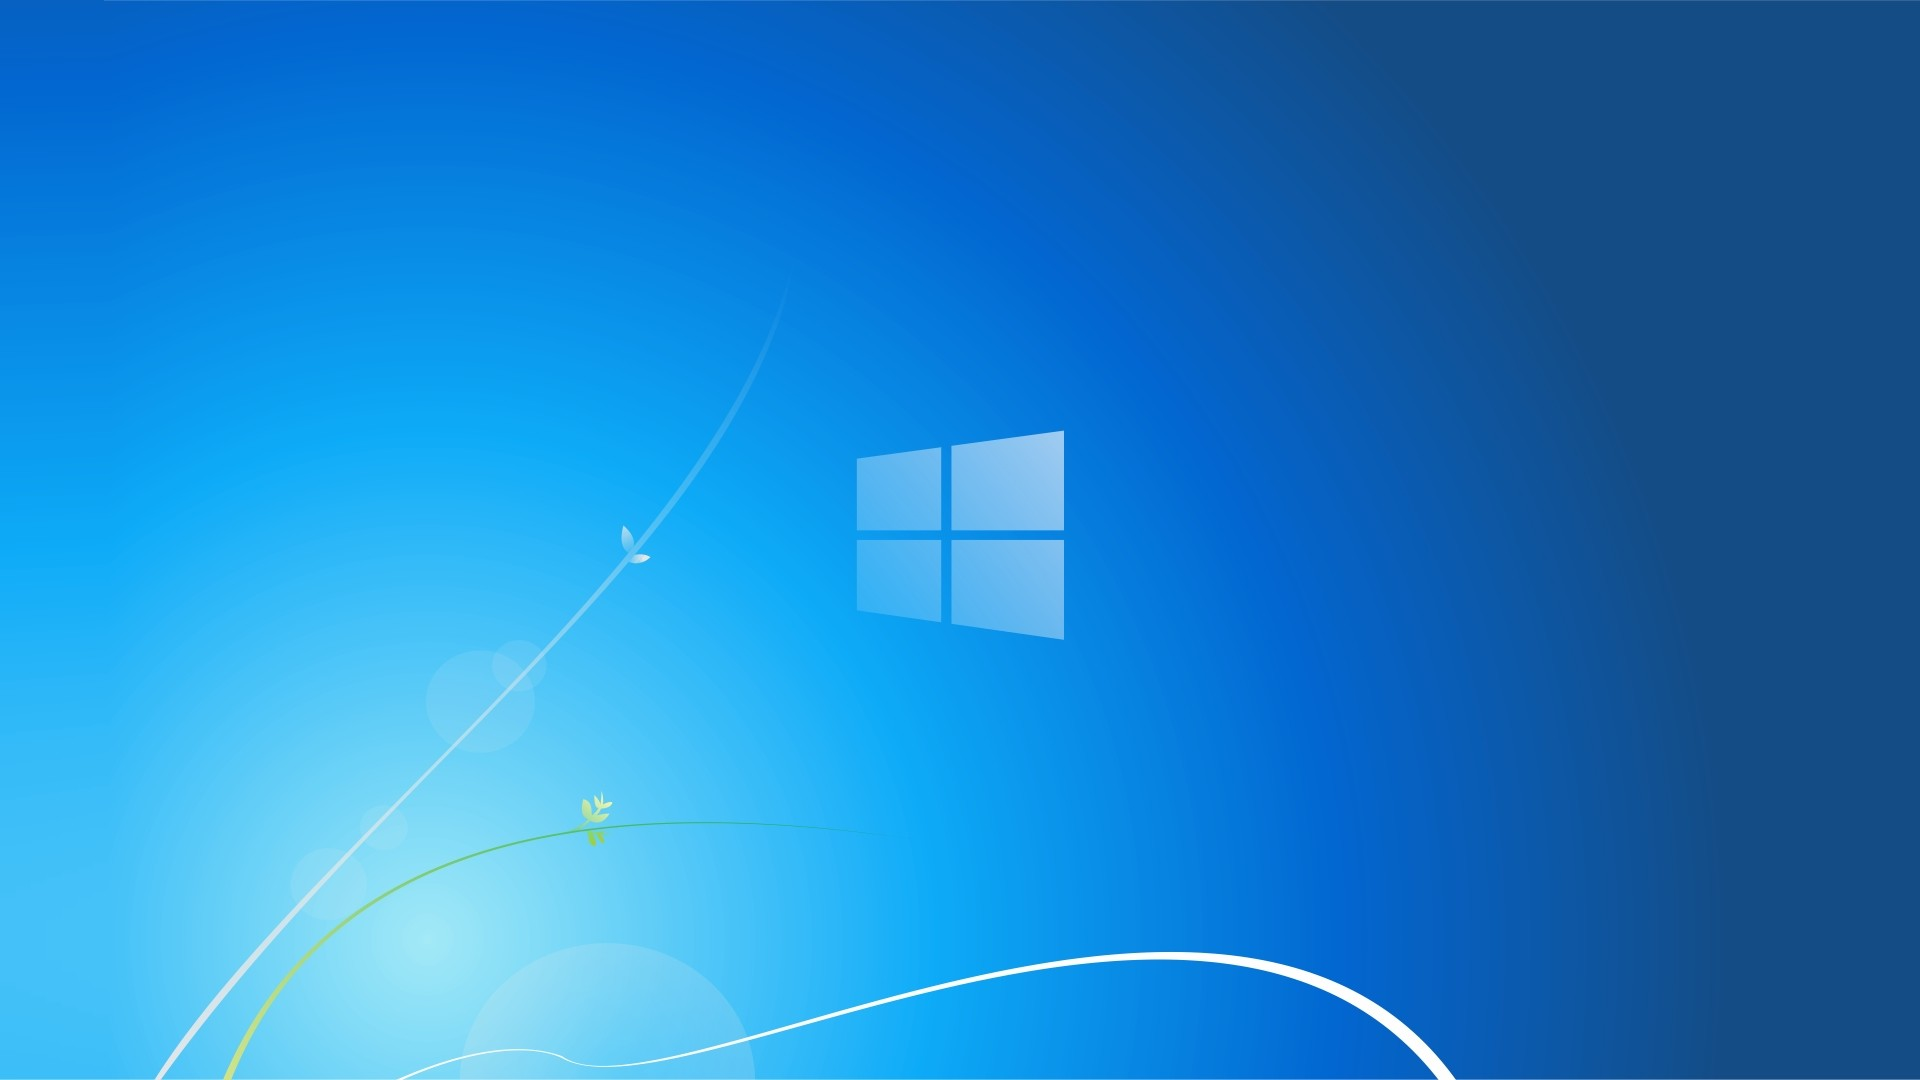 desktop background windows 7 (62+ images)